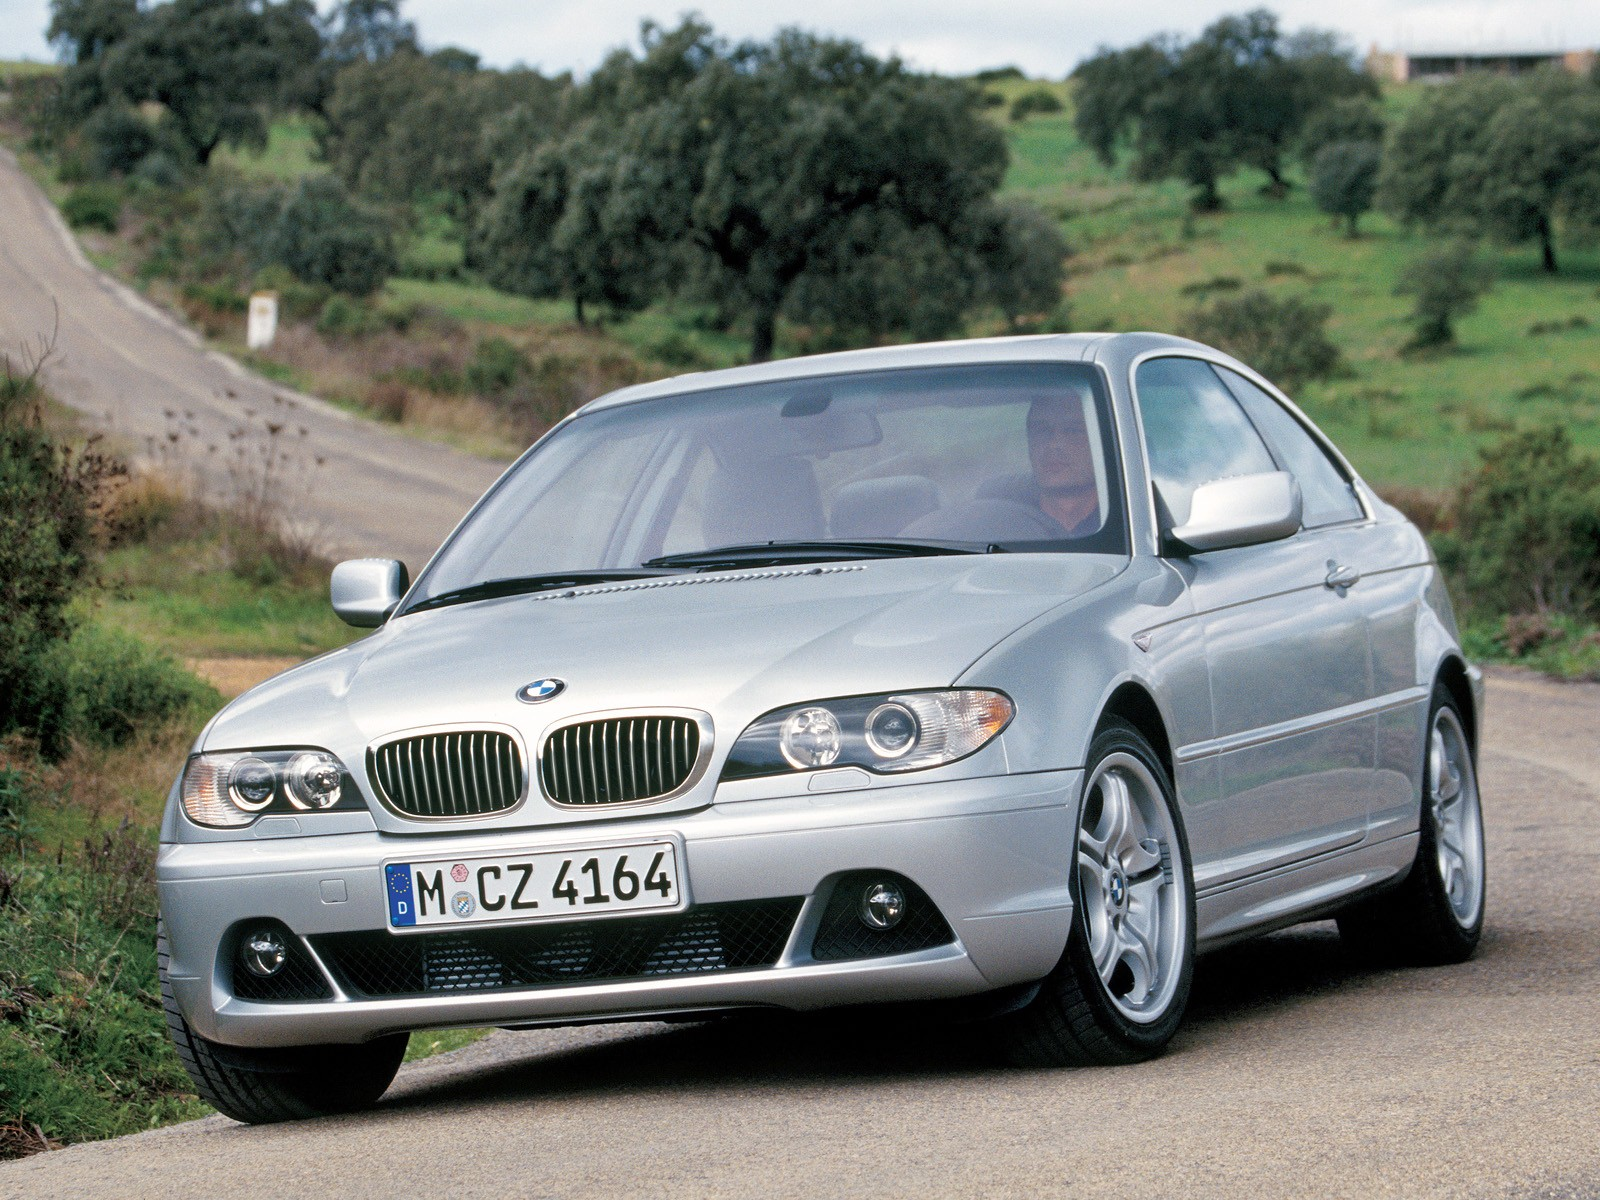 2004 Bmw 325ci Specs >> BMW 3 Series Coupe (E46) specs - 2003, 2004, 2005, 2006 - autoevolution